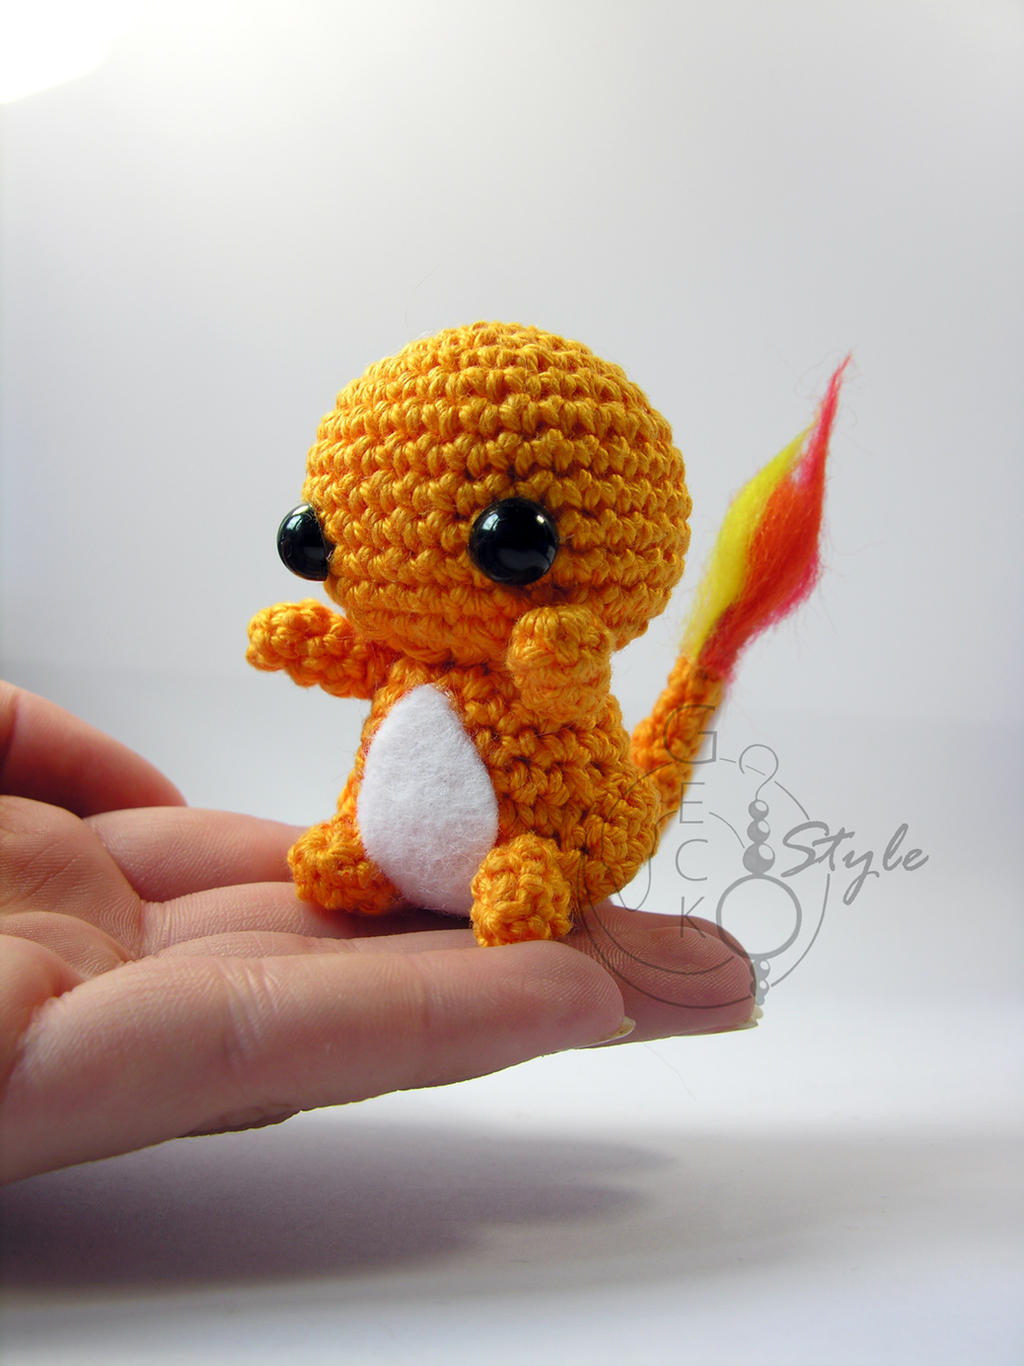 Amigurumi Tutorial Pokemon : Chibi Charmander Amigurumi by LeFay00 on DeviantArt